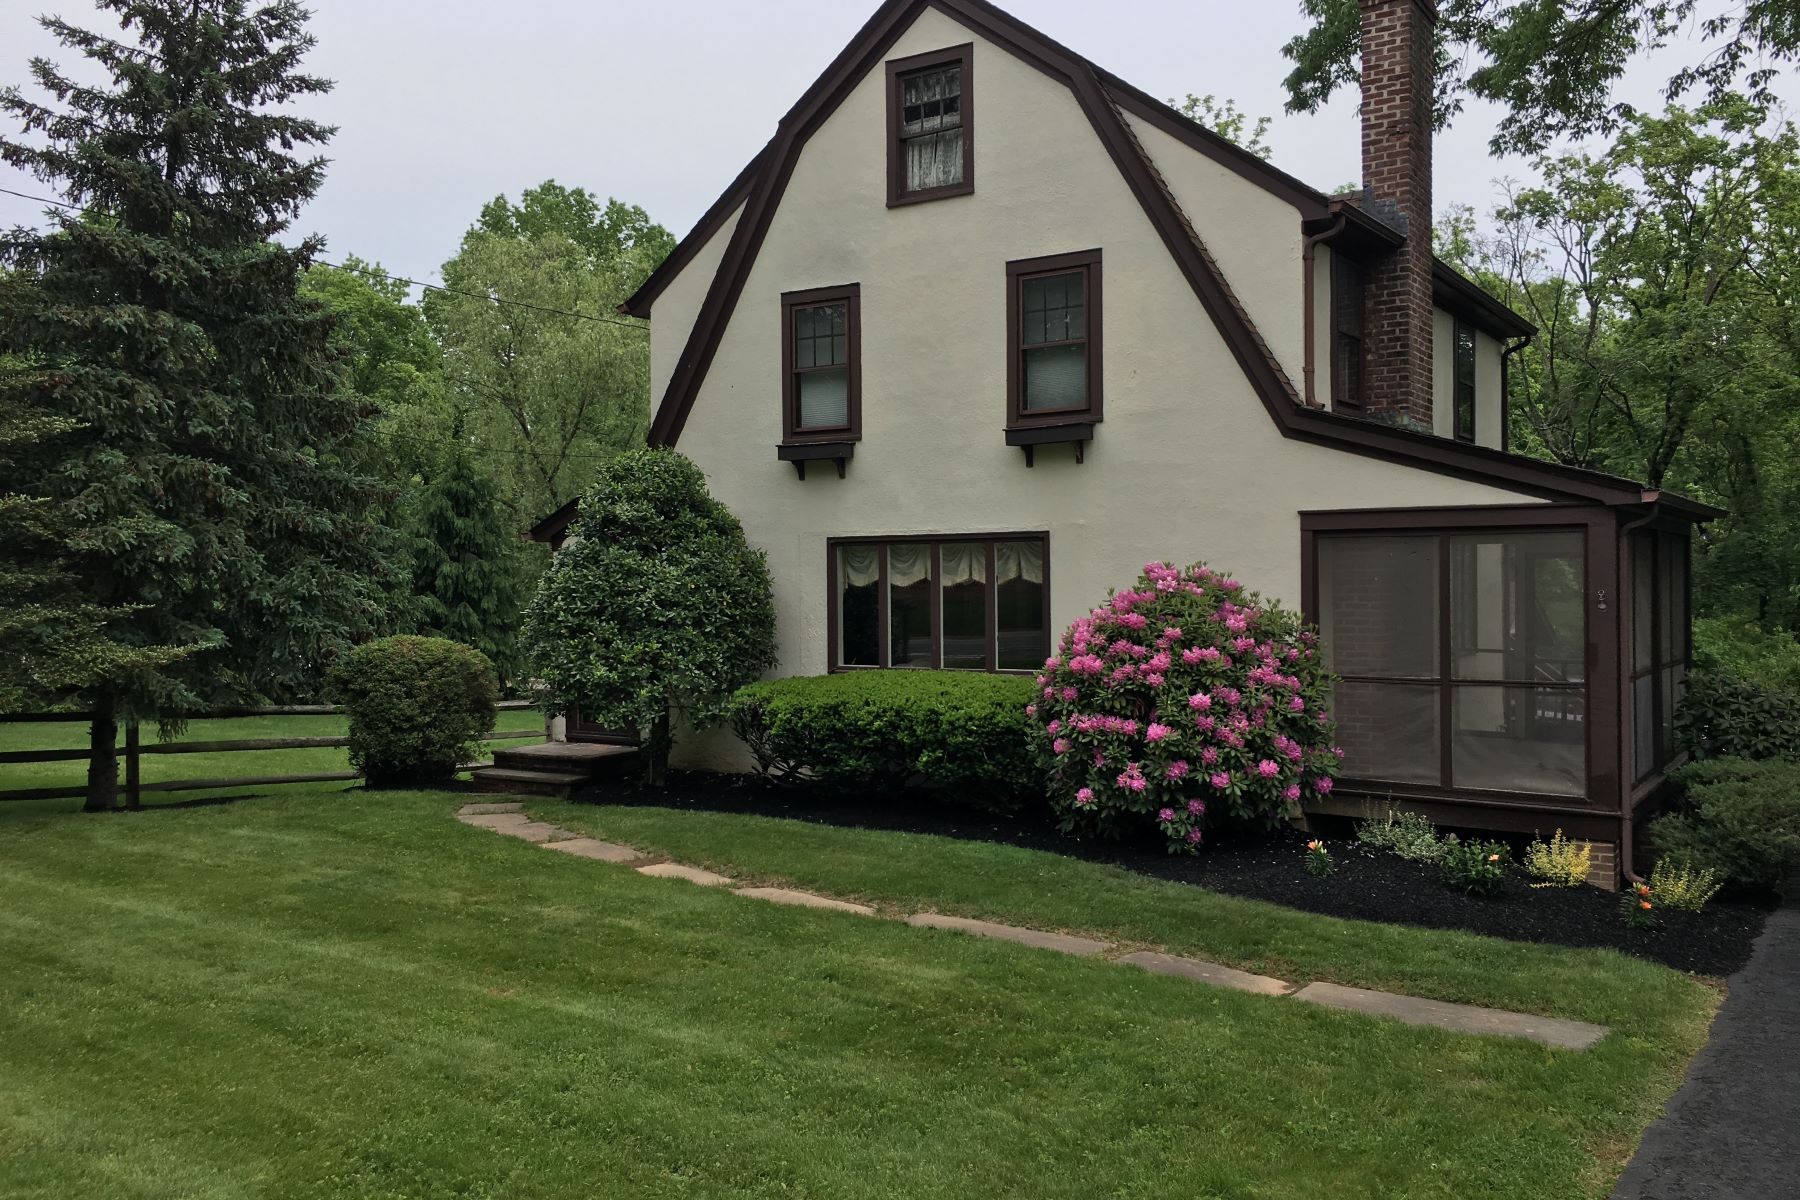 Single Family Home for Sale at Charming Colonial Tudor 512 Lyons Road Bernards Township, New Jersey 07920 United States